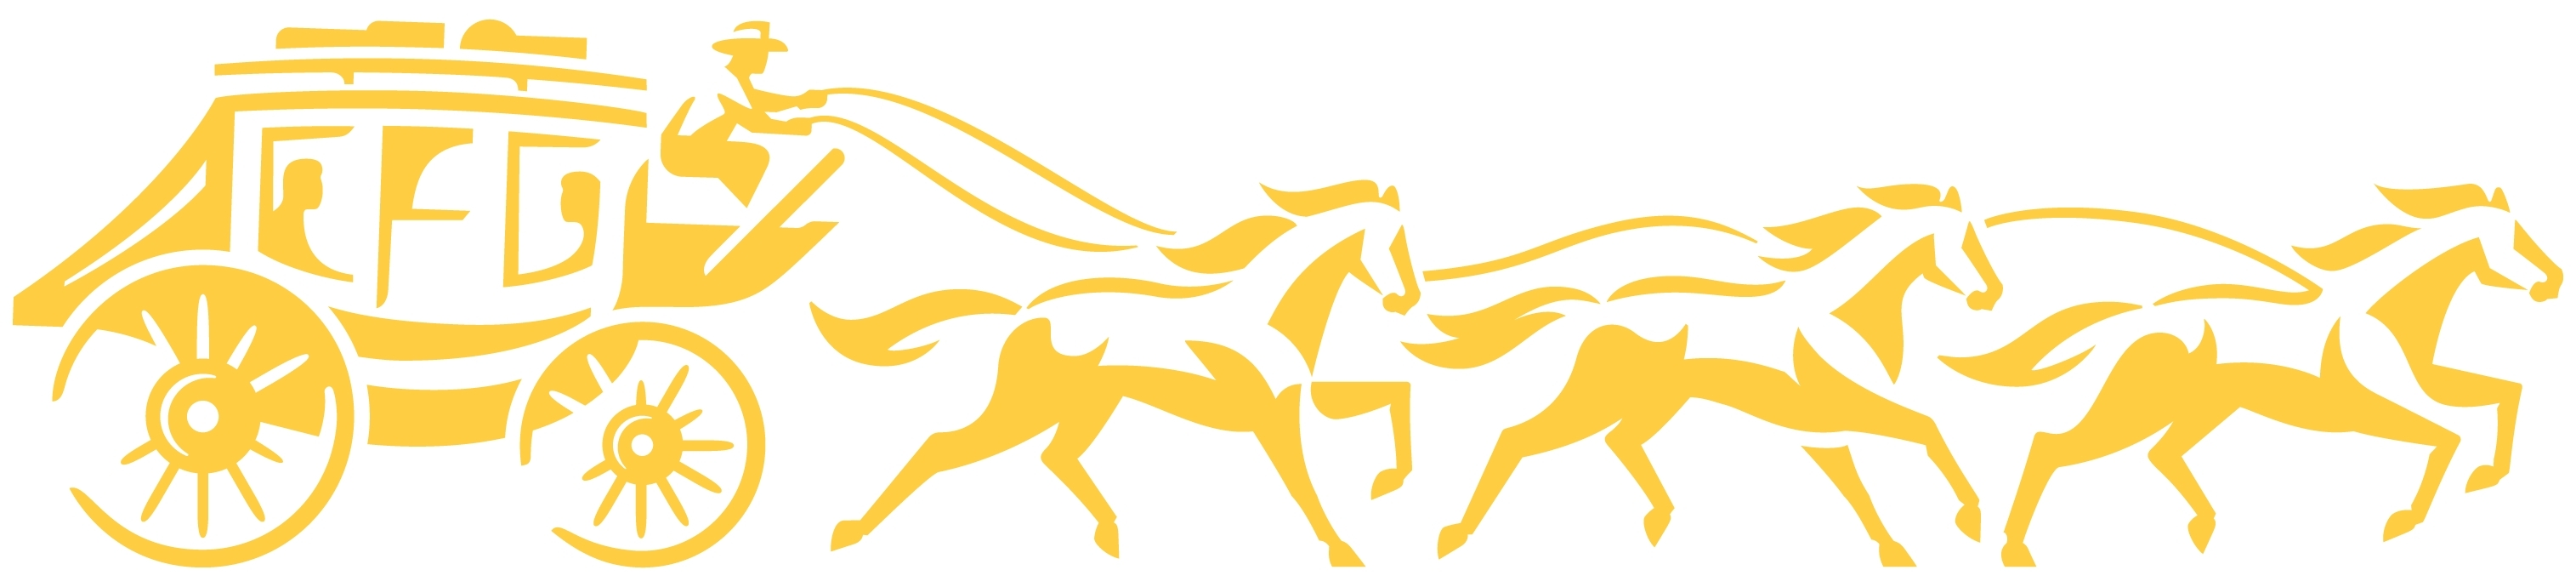 Symbol of a bank clipart wells fargo clipart freeuse Wells Fargo Launches New Brand Campaign, \'This is Wells ... clipart freeuse